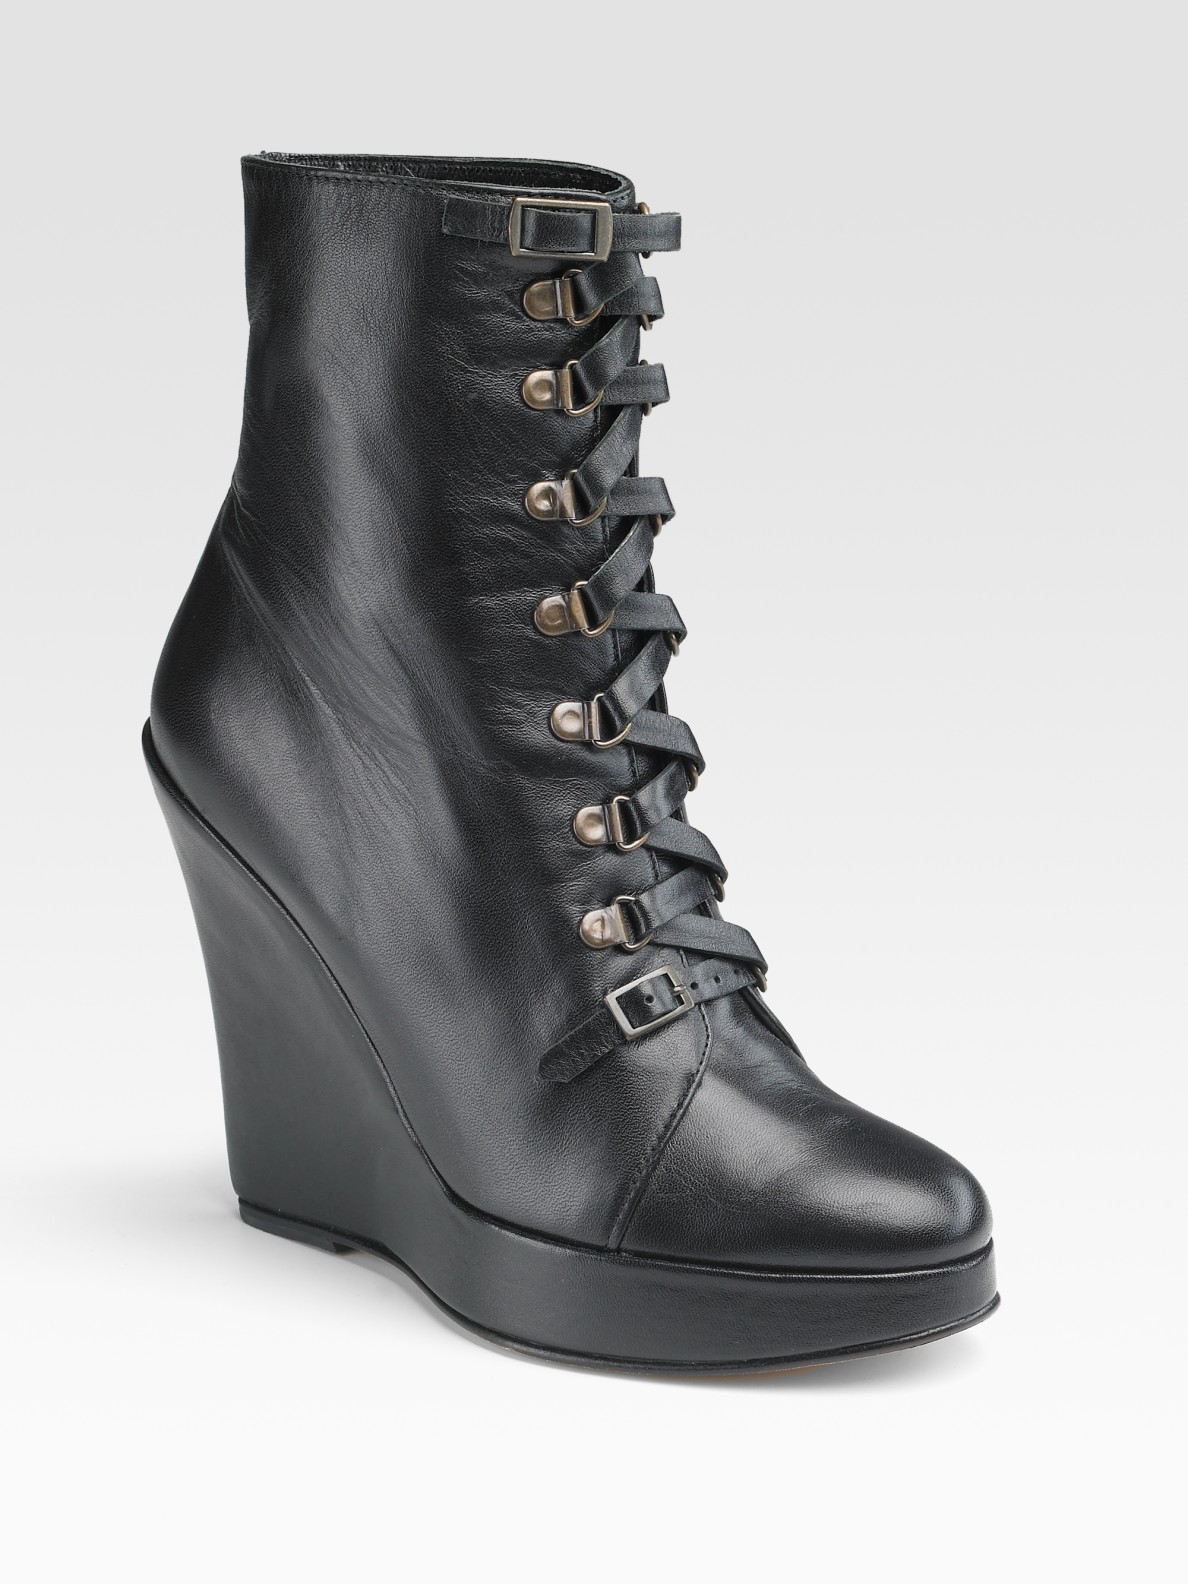 Find lace up wedge ankle boots at ShopStyle. Shop the latest collection of lace up wedge ankle boots from the most popular stores - all in one place.